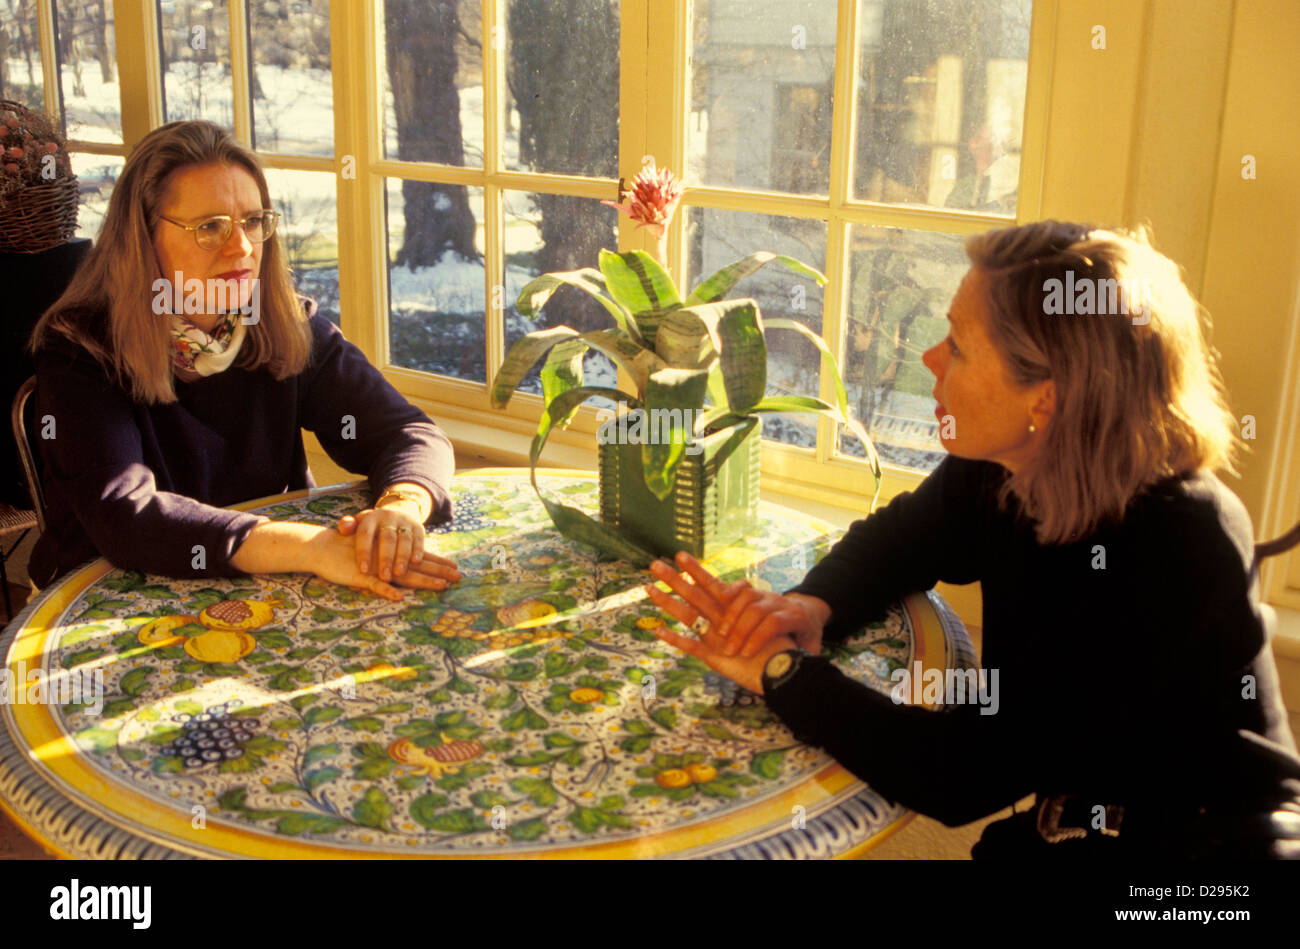 Two Friends (30'S) Converse At Table - Stock Image